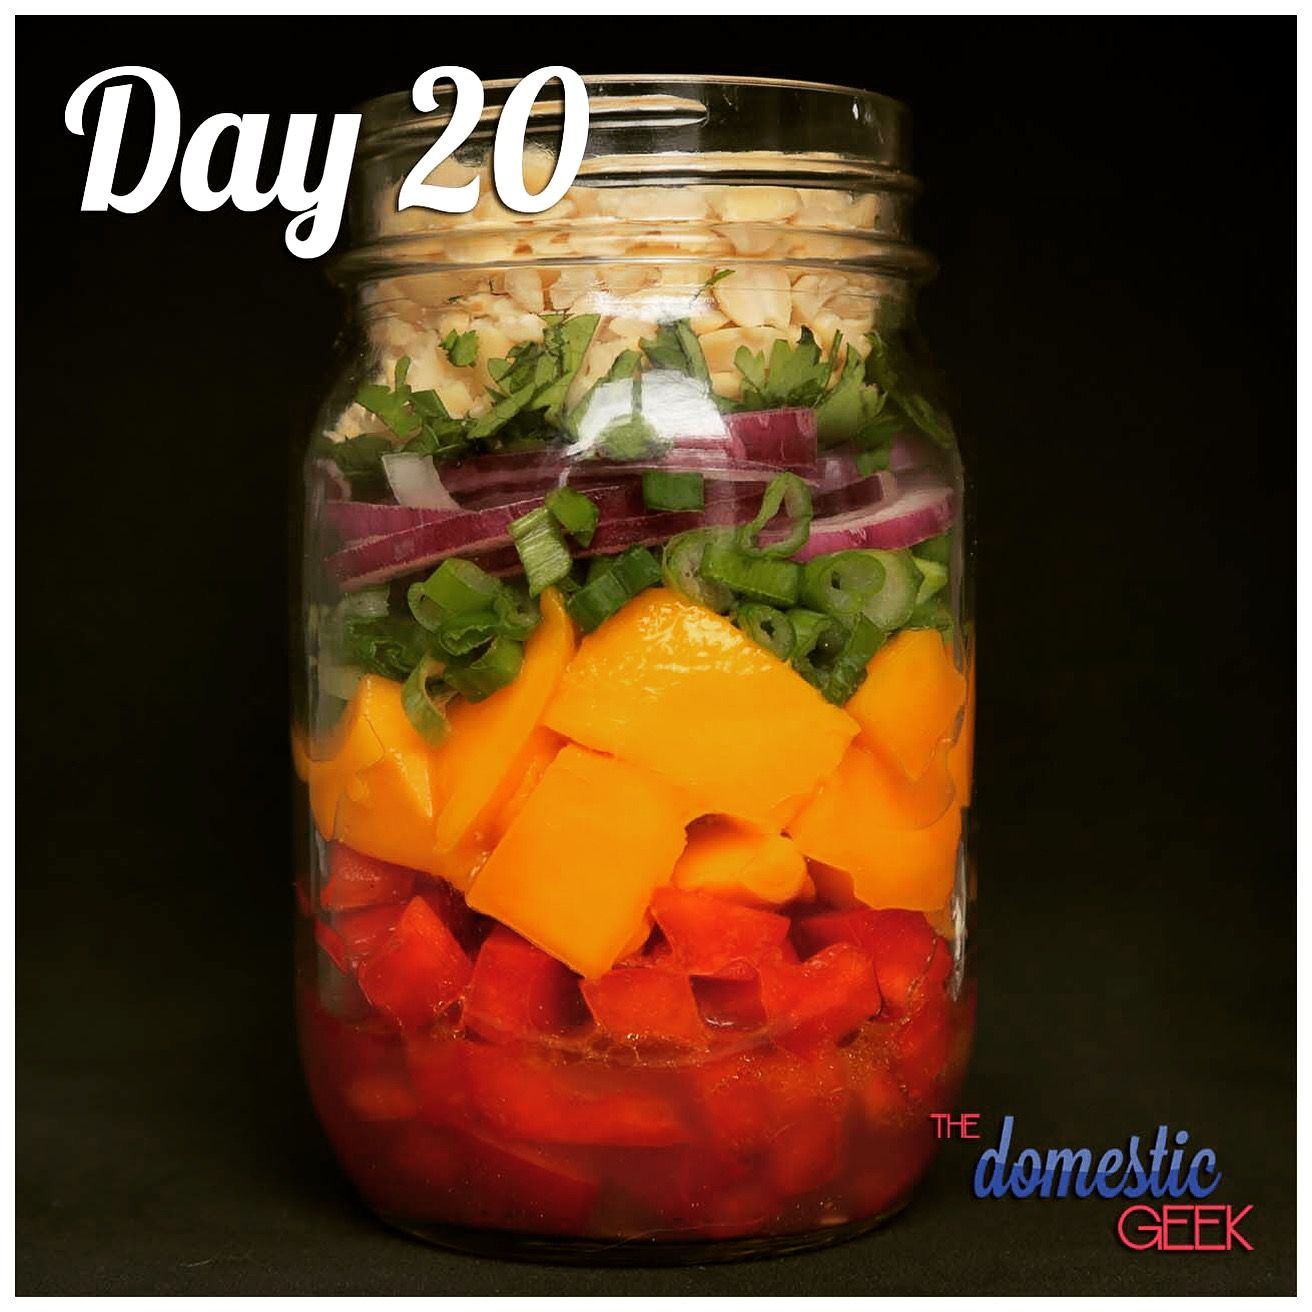 Day 20 - Thai Mango Salad 2 tbsp honey lime dressing (bit.ly/12Dressings)  ½ cup red bell pepper, diced 1 small mango, diced ¼ small red onion 1 green onion ¼ cup chopped peanuts 2 tbsp coriander, chopped